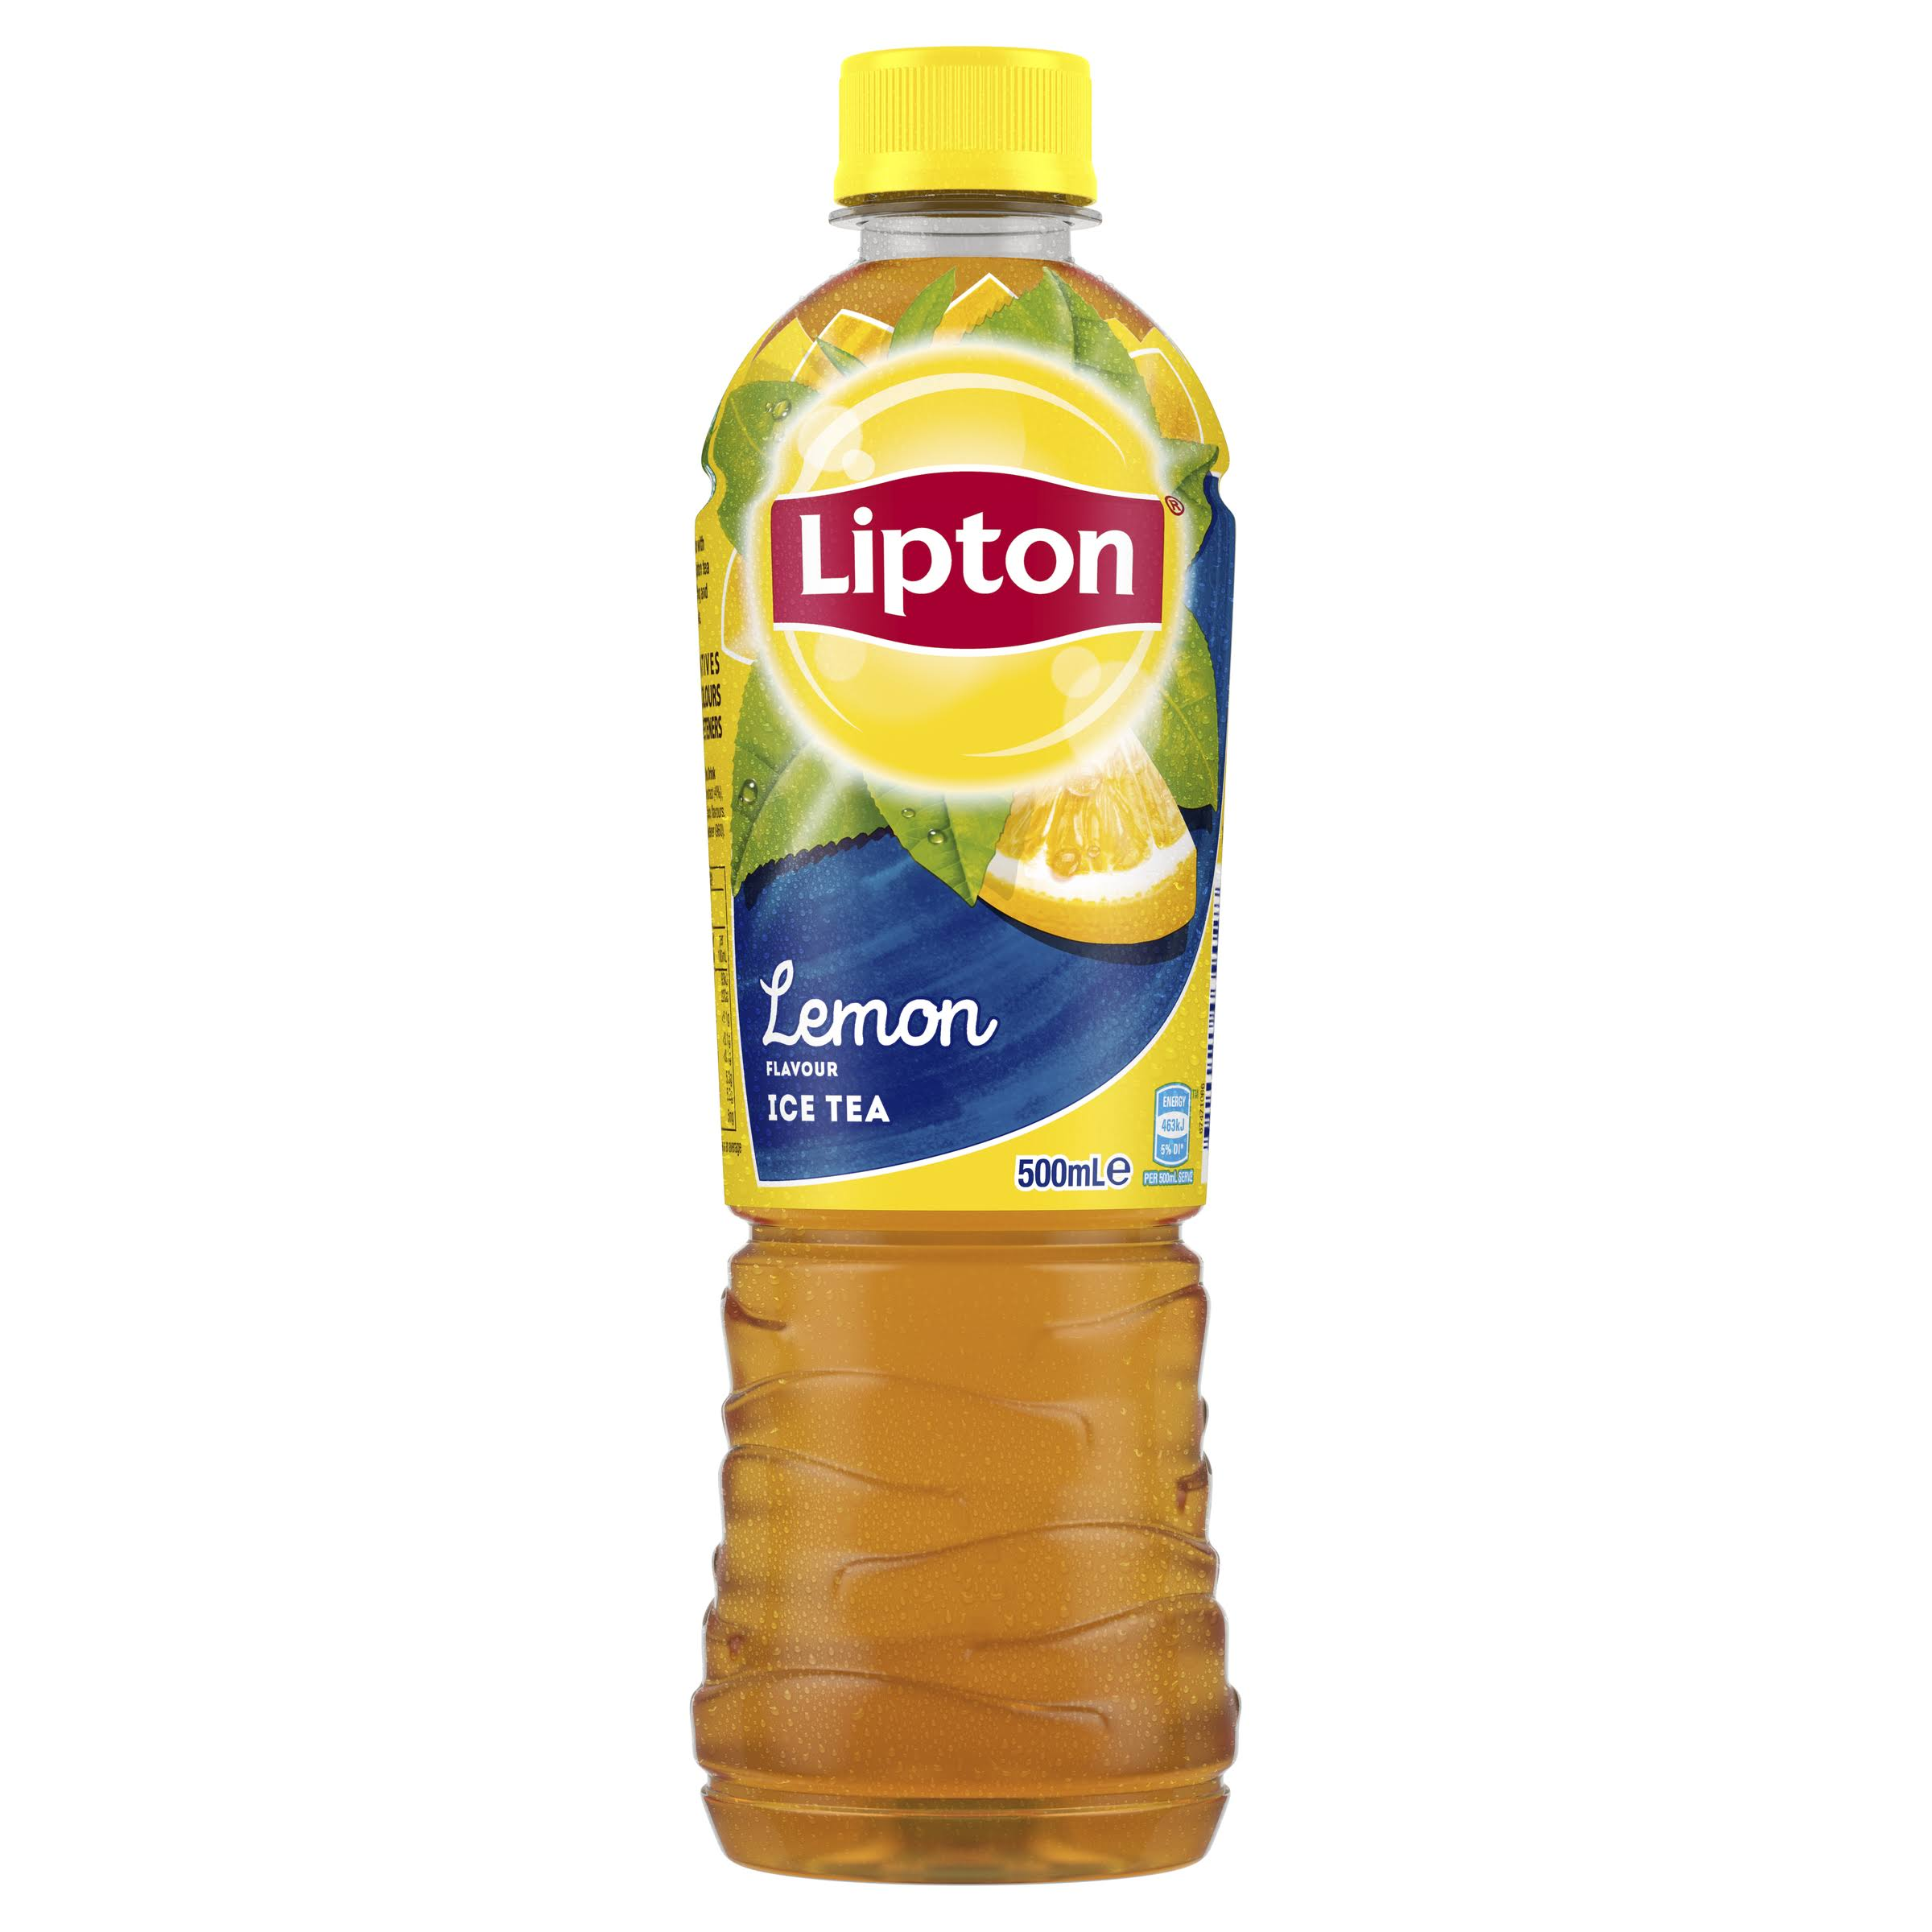 Lipton Ice Tea - Lemon, 500ml x 12